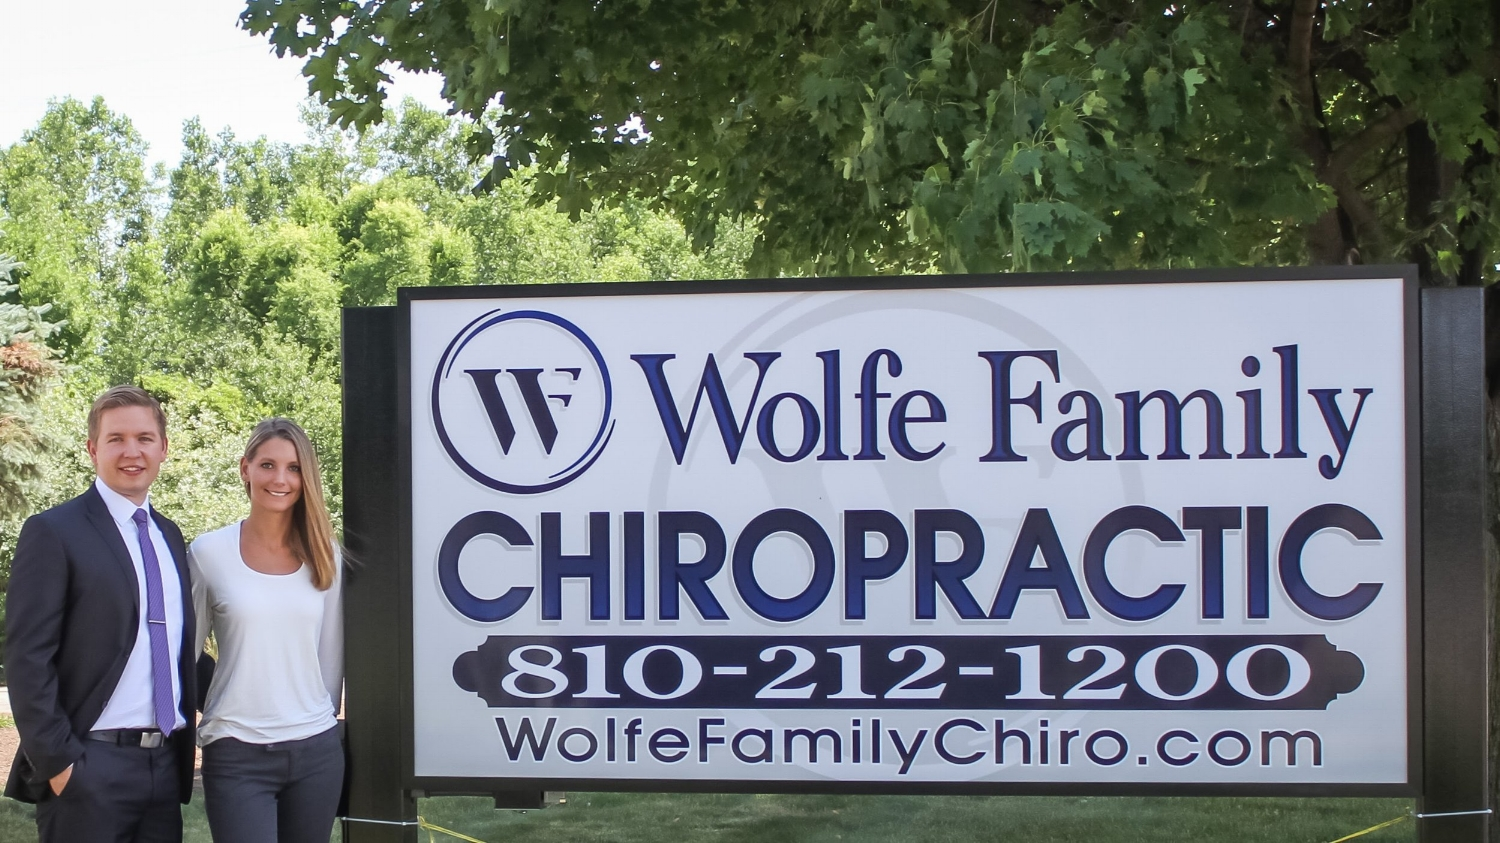 Dr. Alex Wolfe & Dr. Hannah Wolfe by the Wolfe Family Chiropractic sign on Dryden Rd. in Metamora, MI